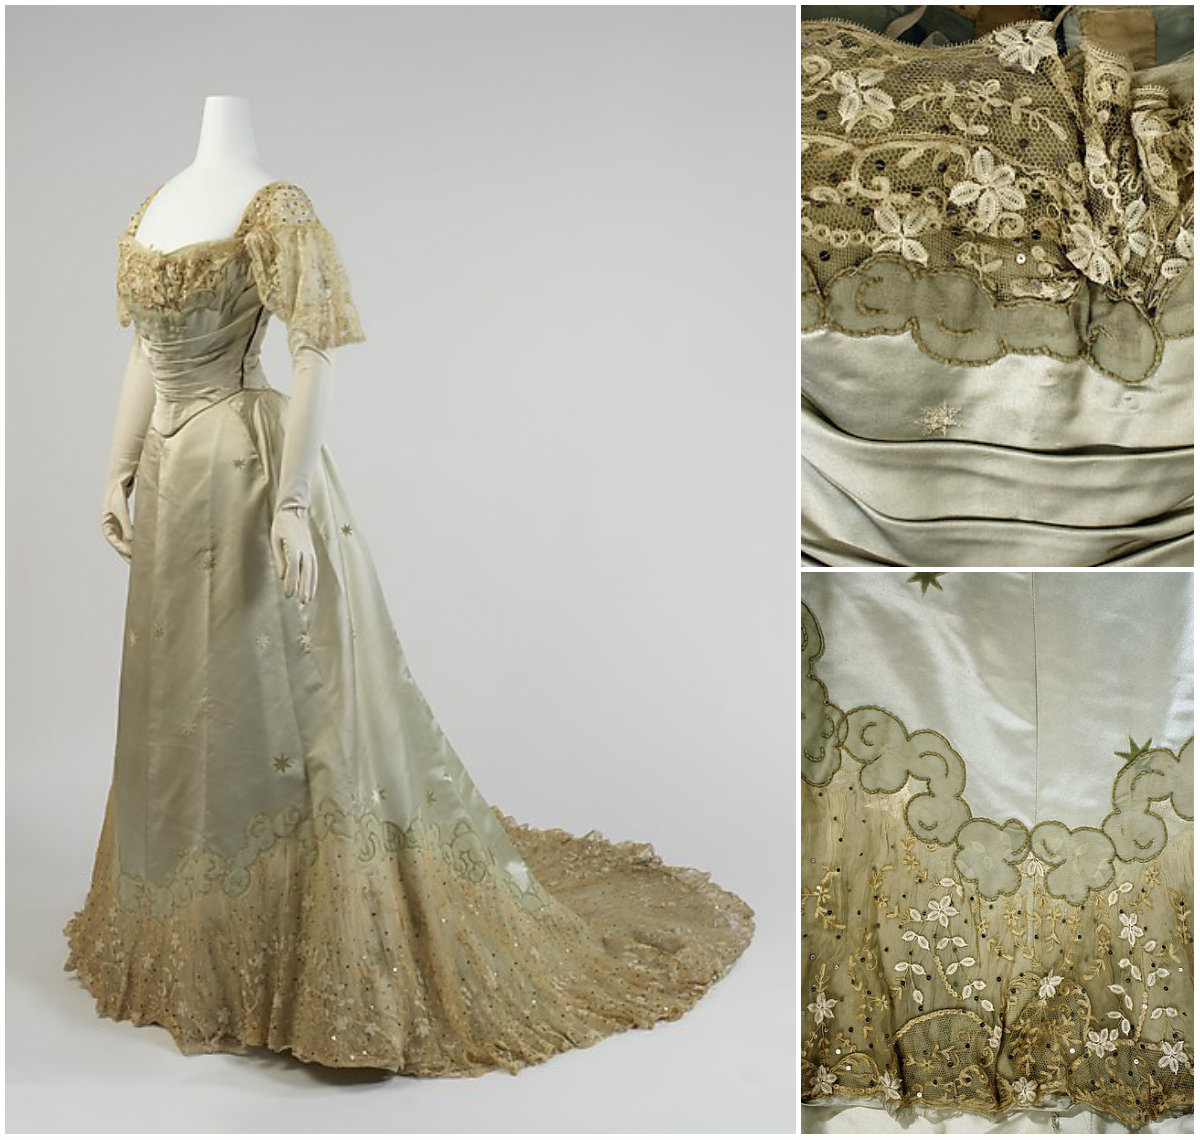 1898. Evening Dress. Silk, cotton, metal. metmuseum